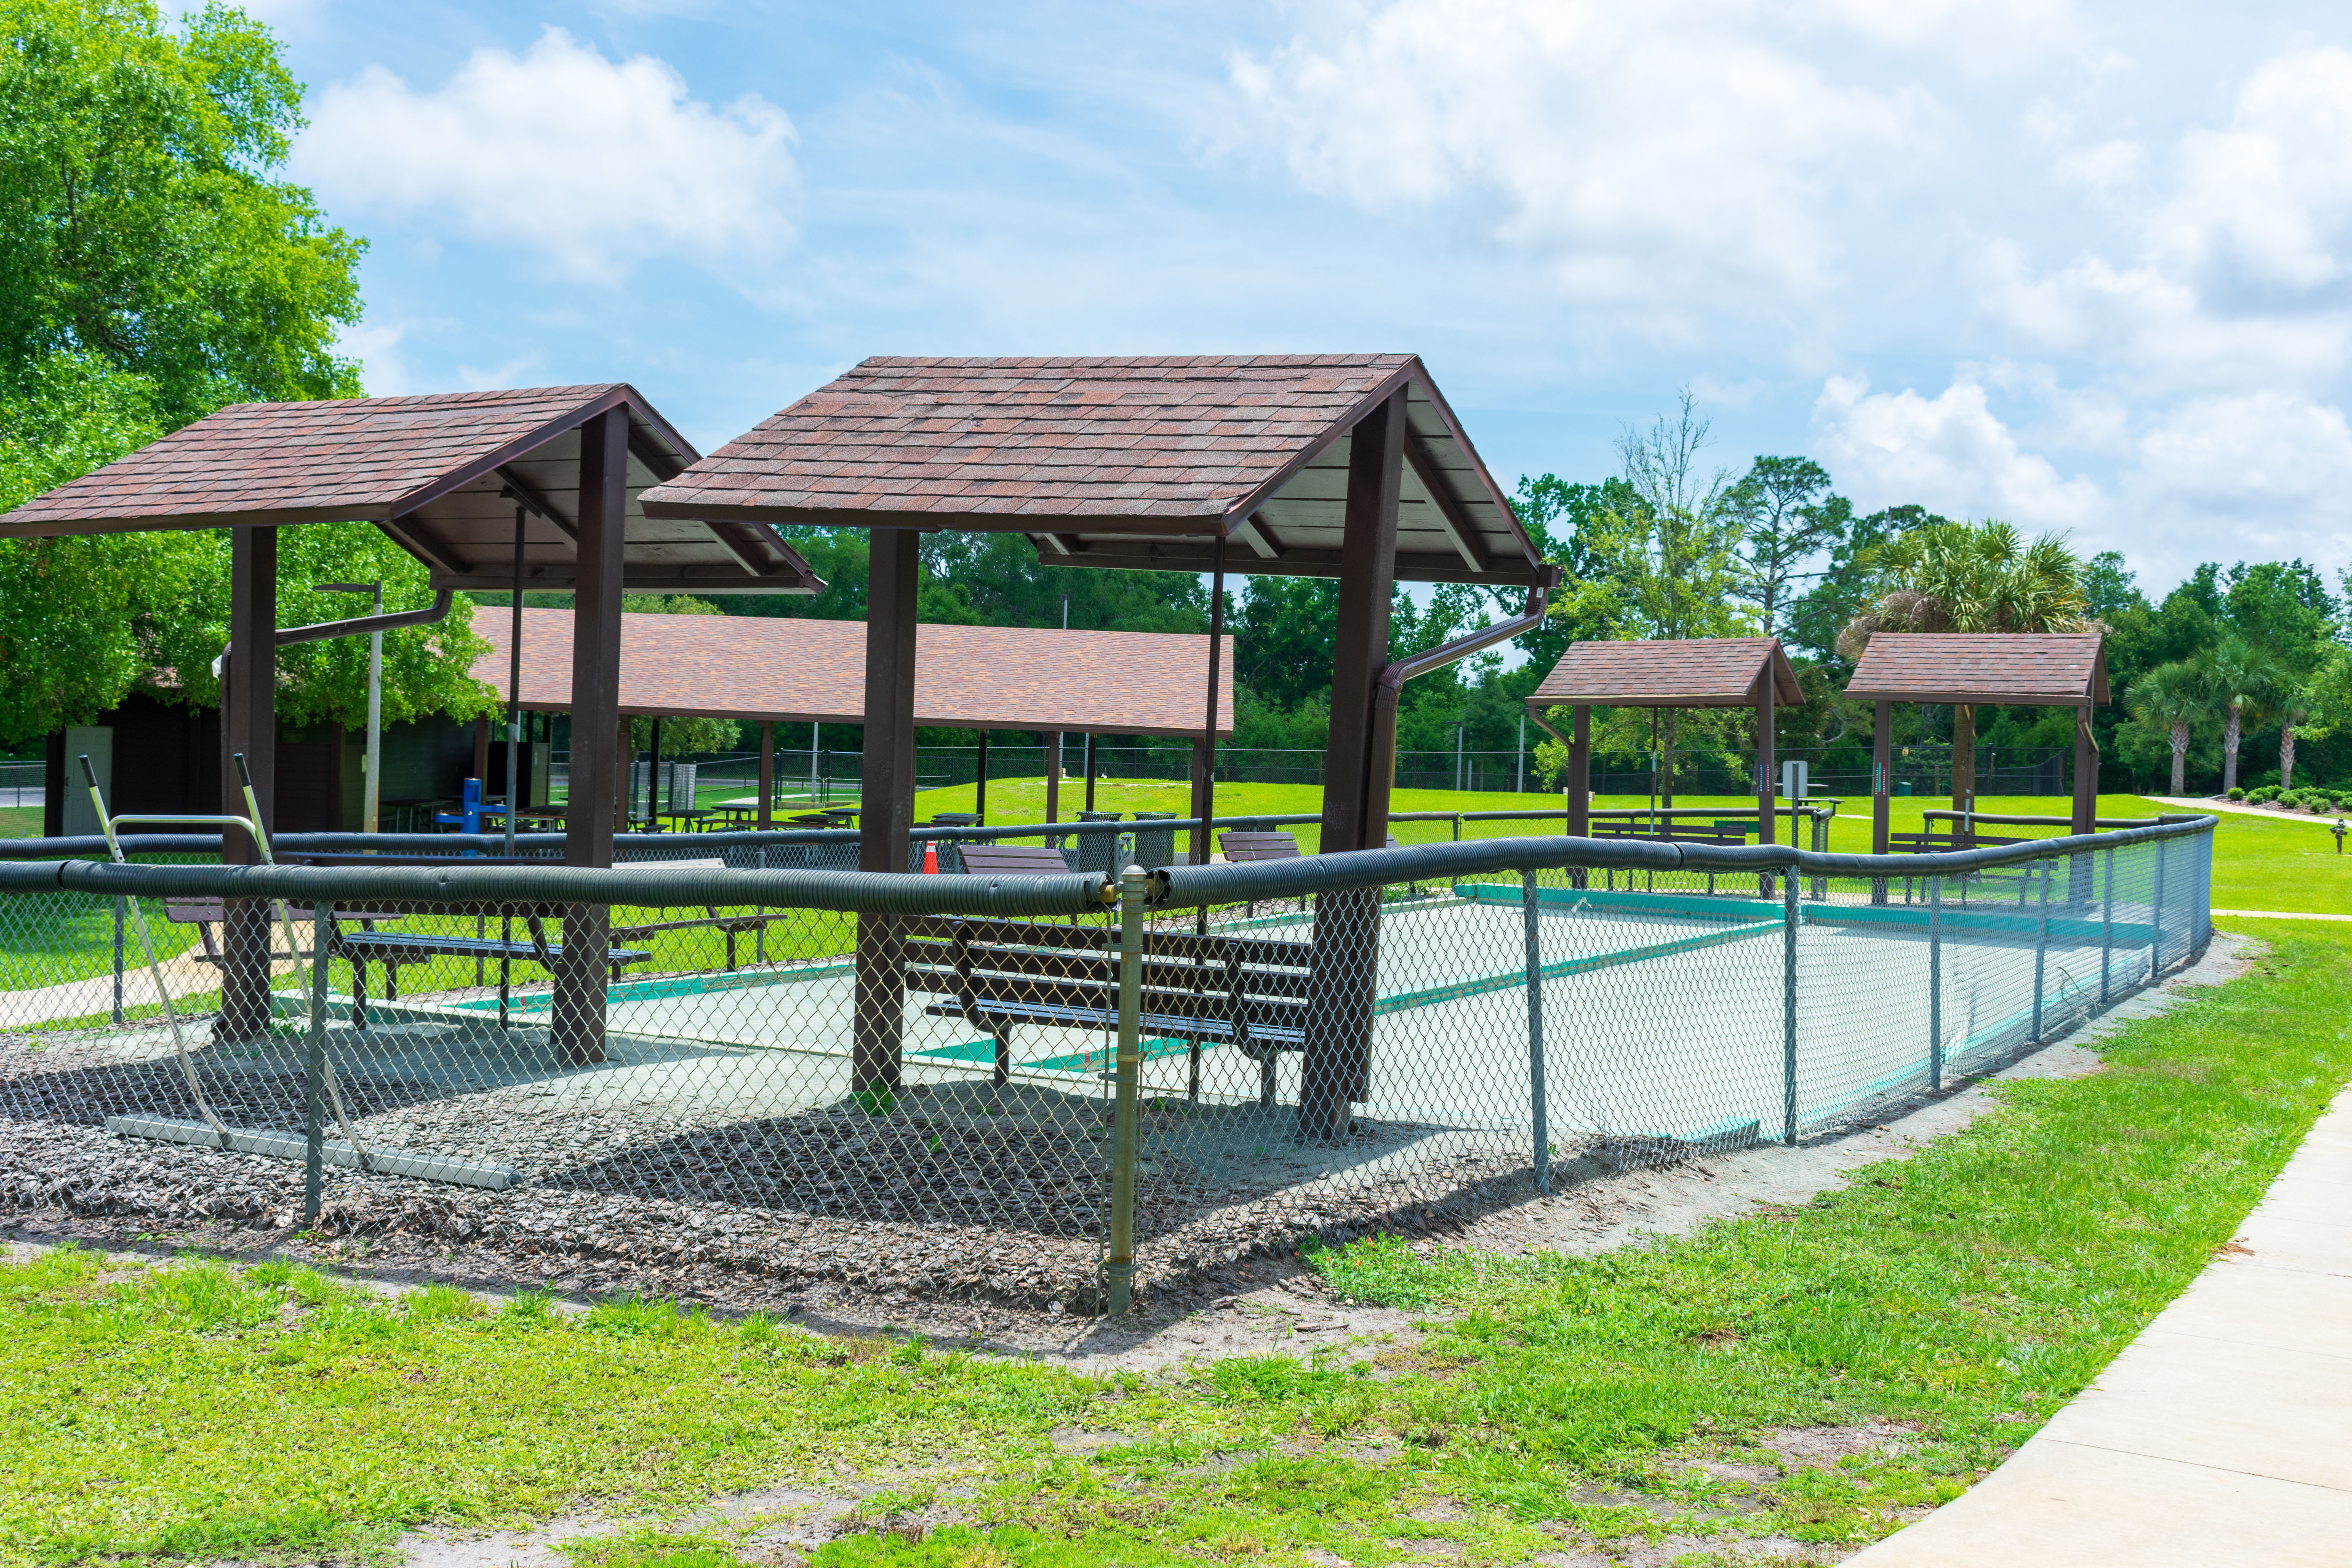 bocce ball courts to be replaced and improved